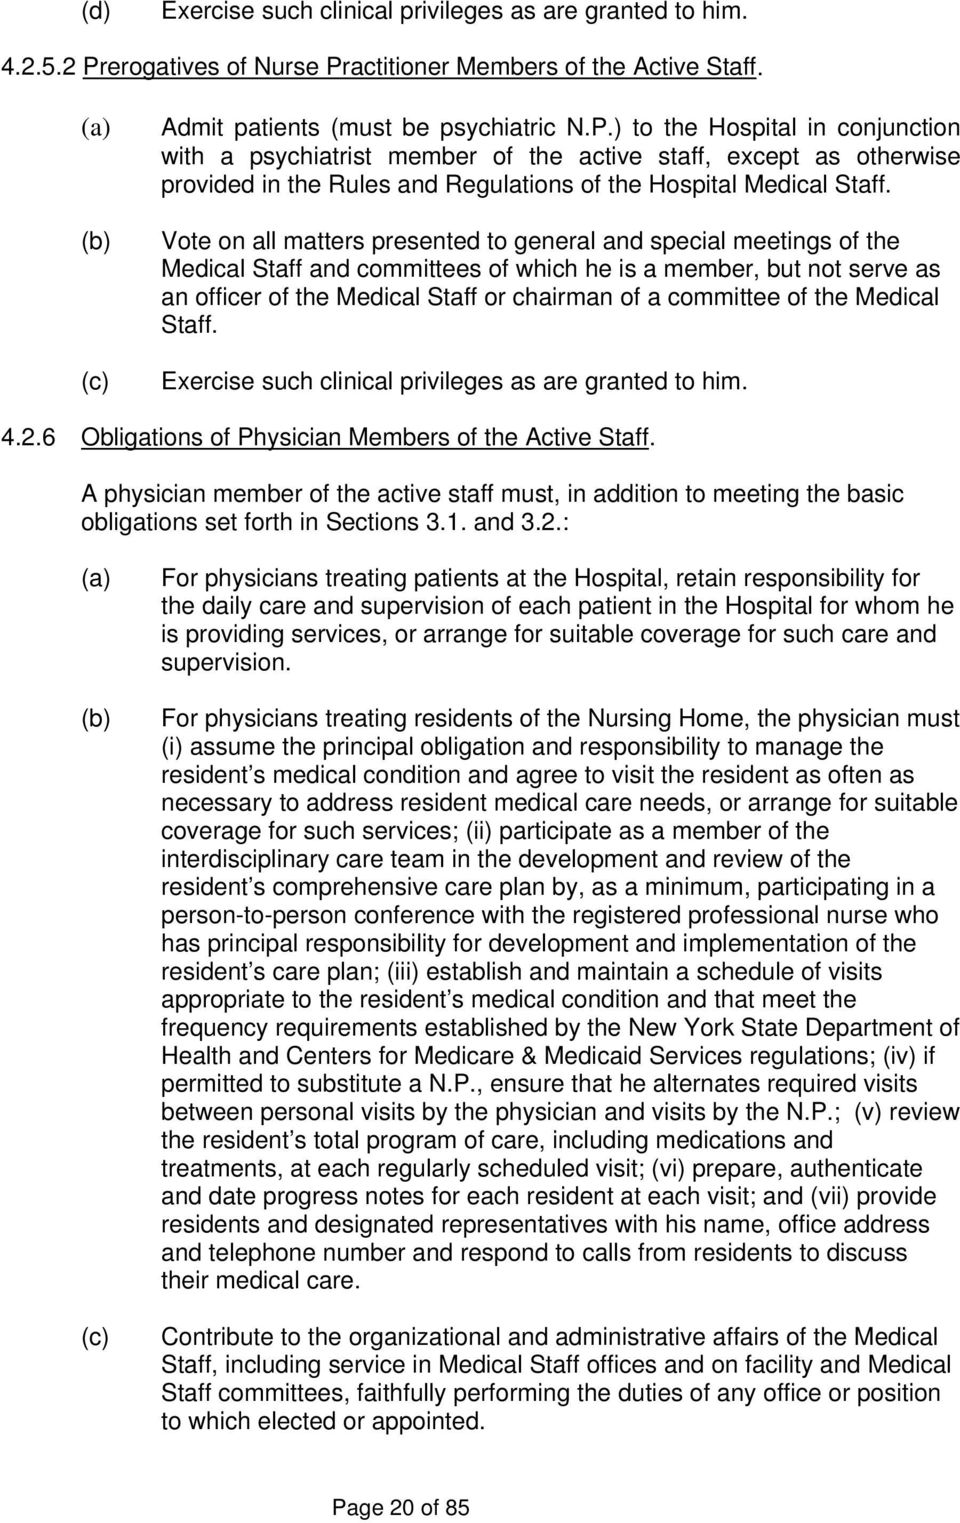 Vote on all matters presented to general and special meetings of the Medical Staff and committees of which he is a member, but not serve as an officer of the Medical Staff or chairman of a committee